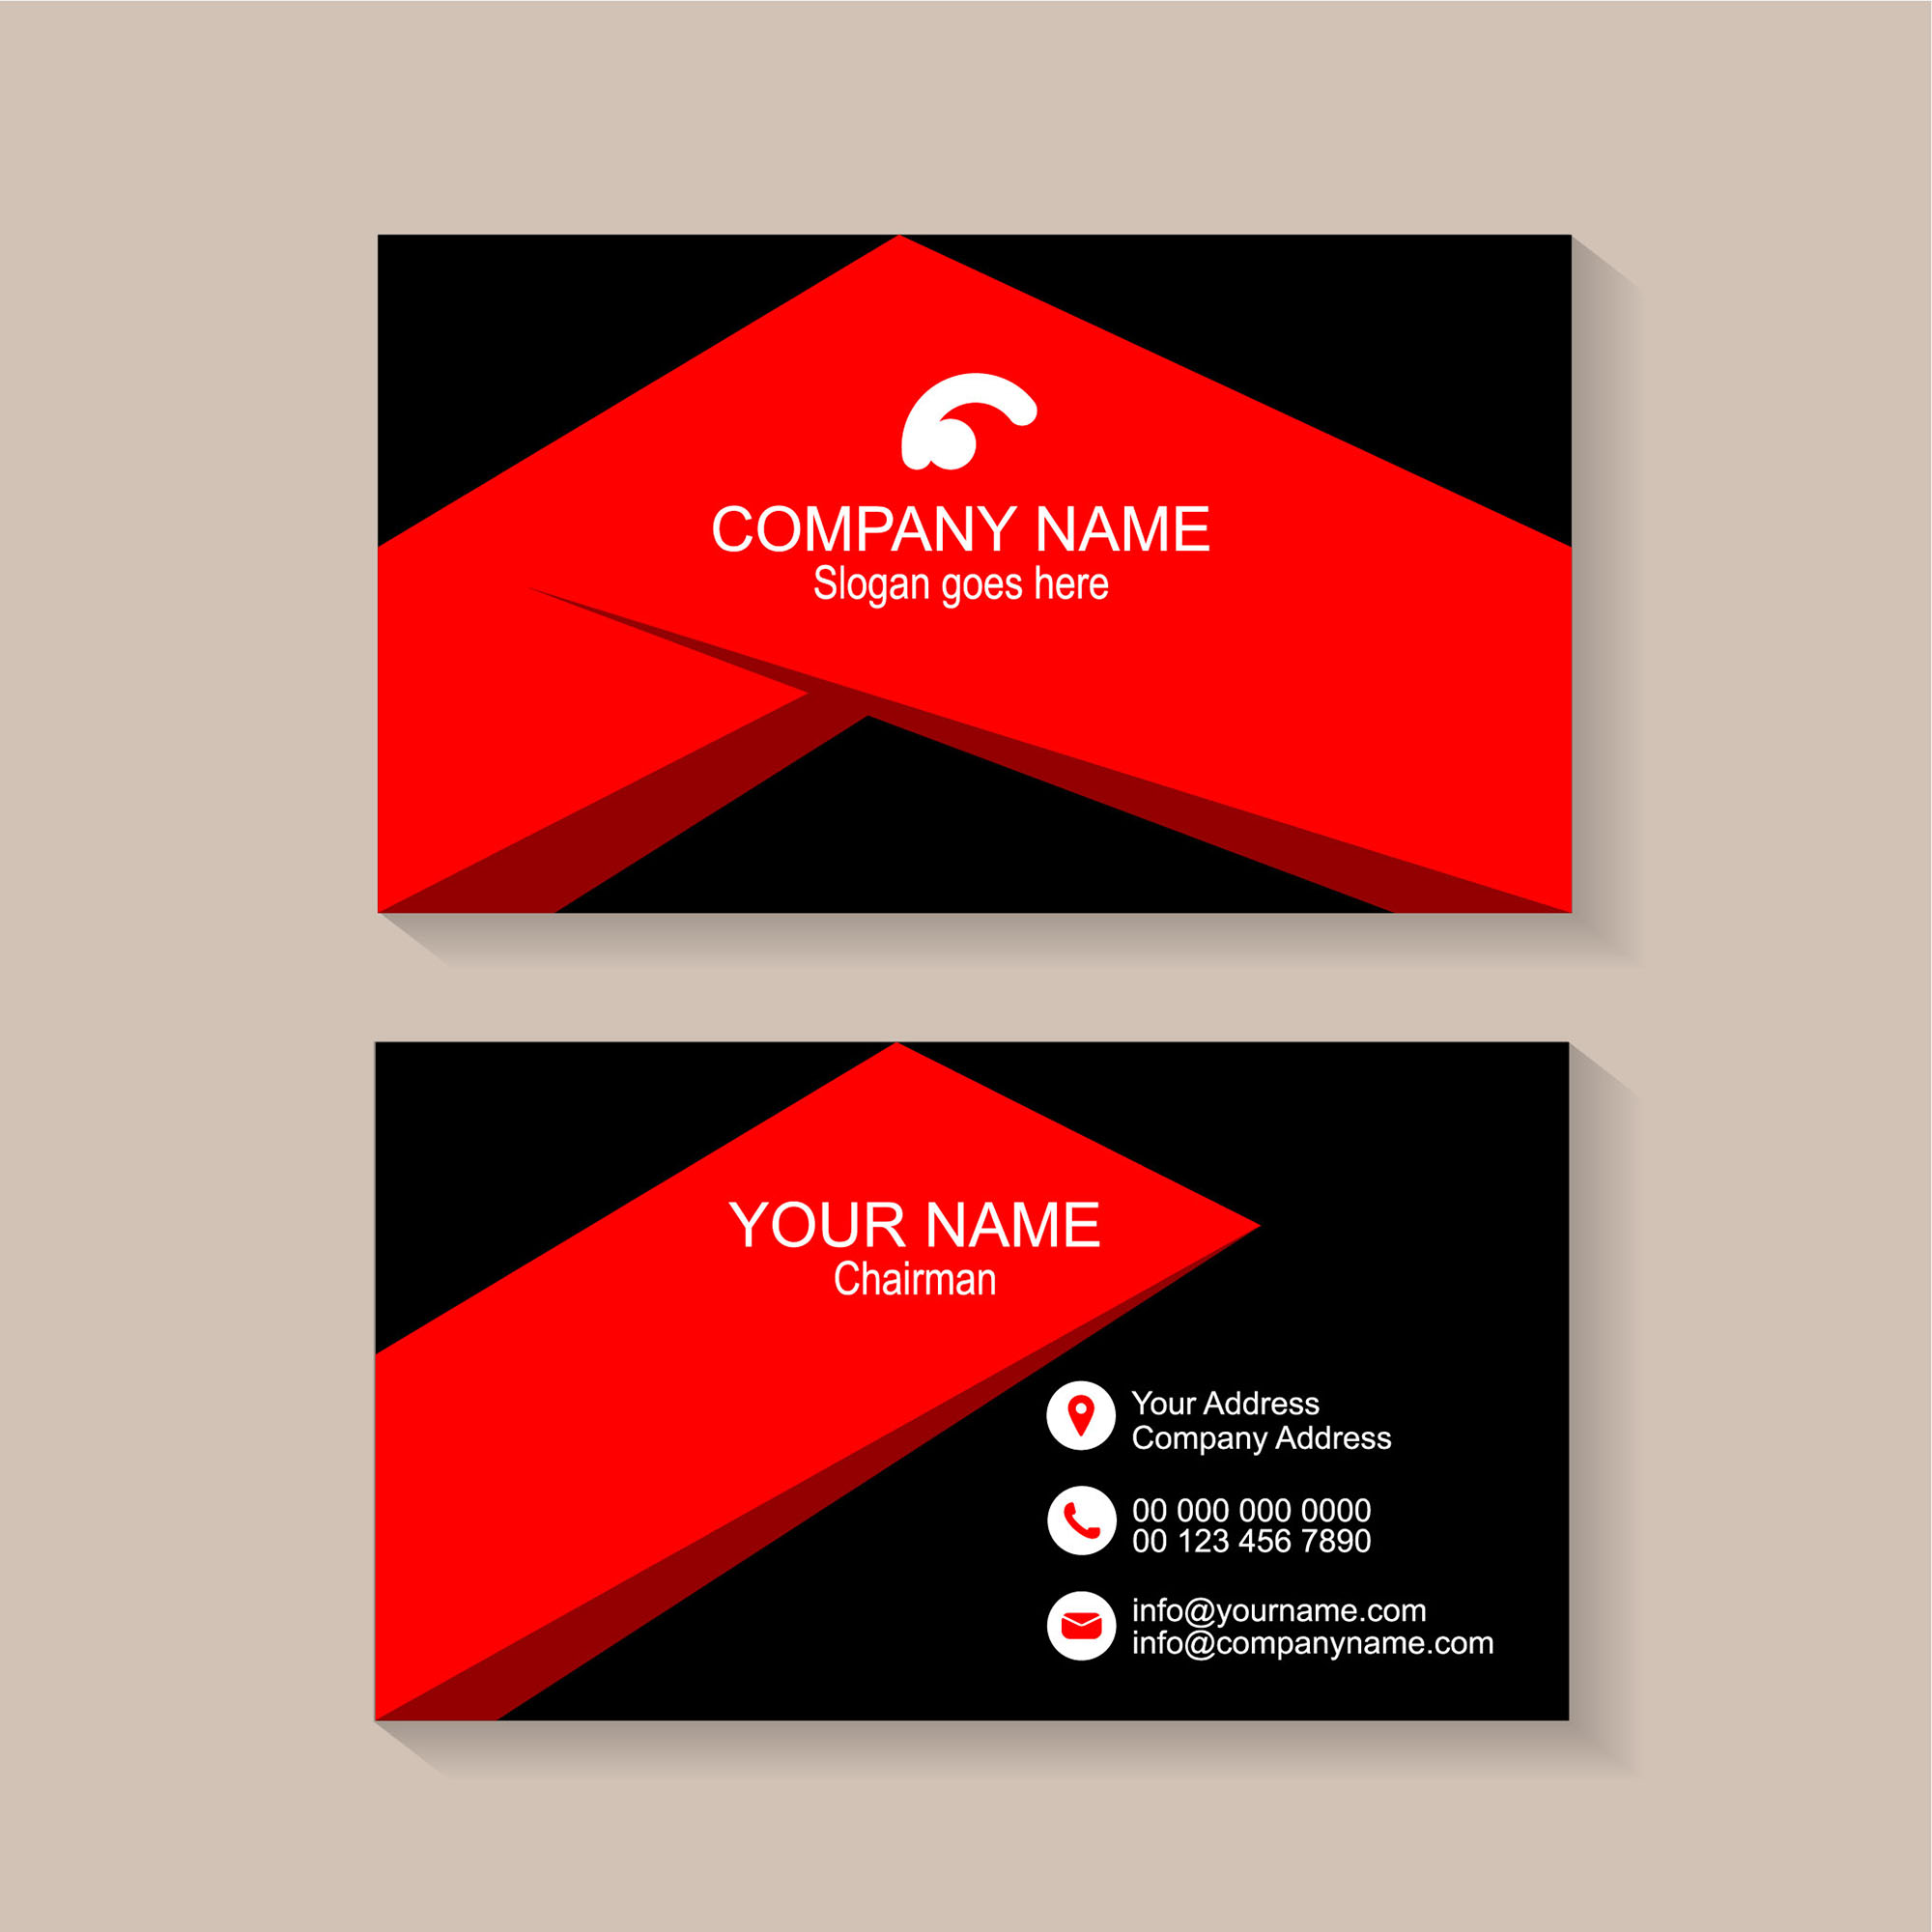 Business card template design free download wisxi business card business cards business card design business card template design templates wajeb Gallery